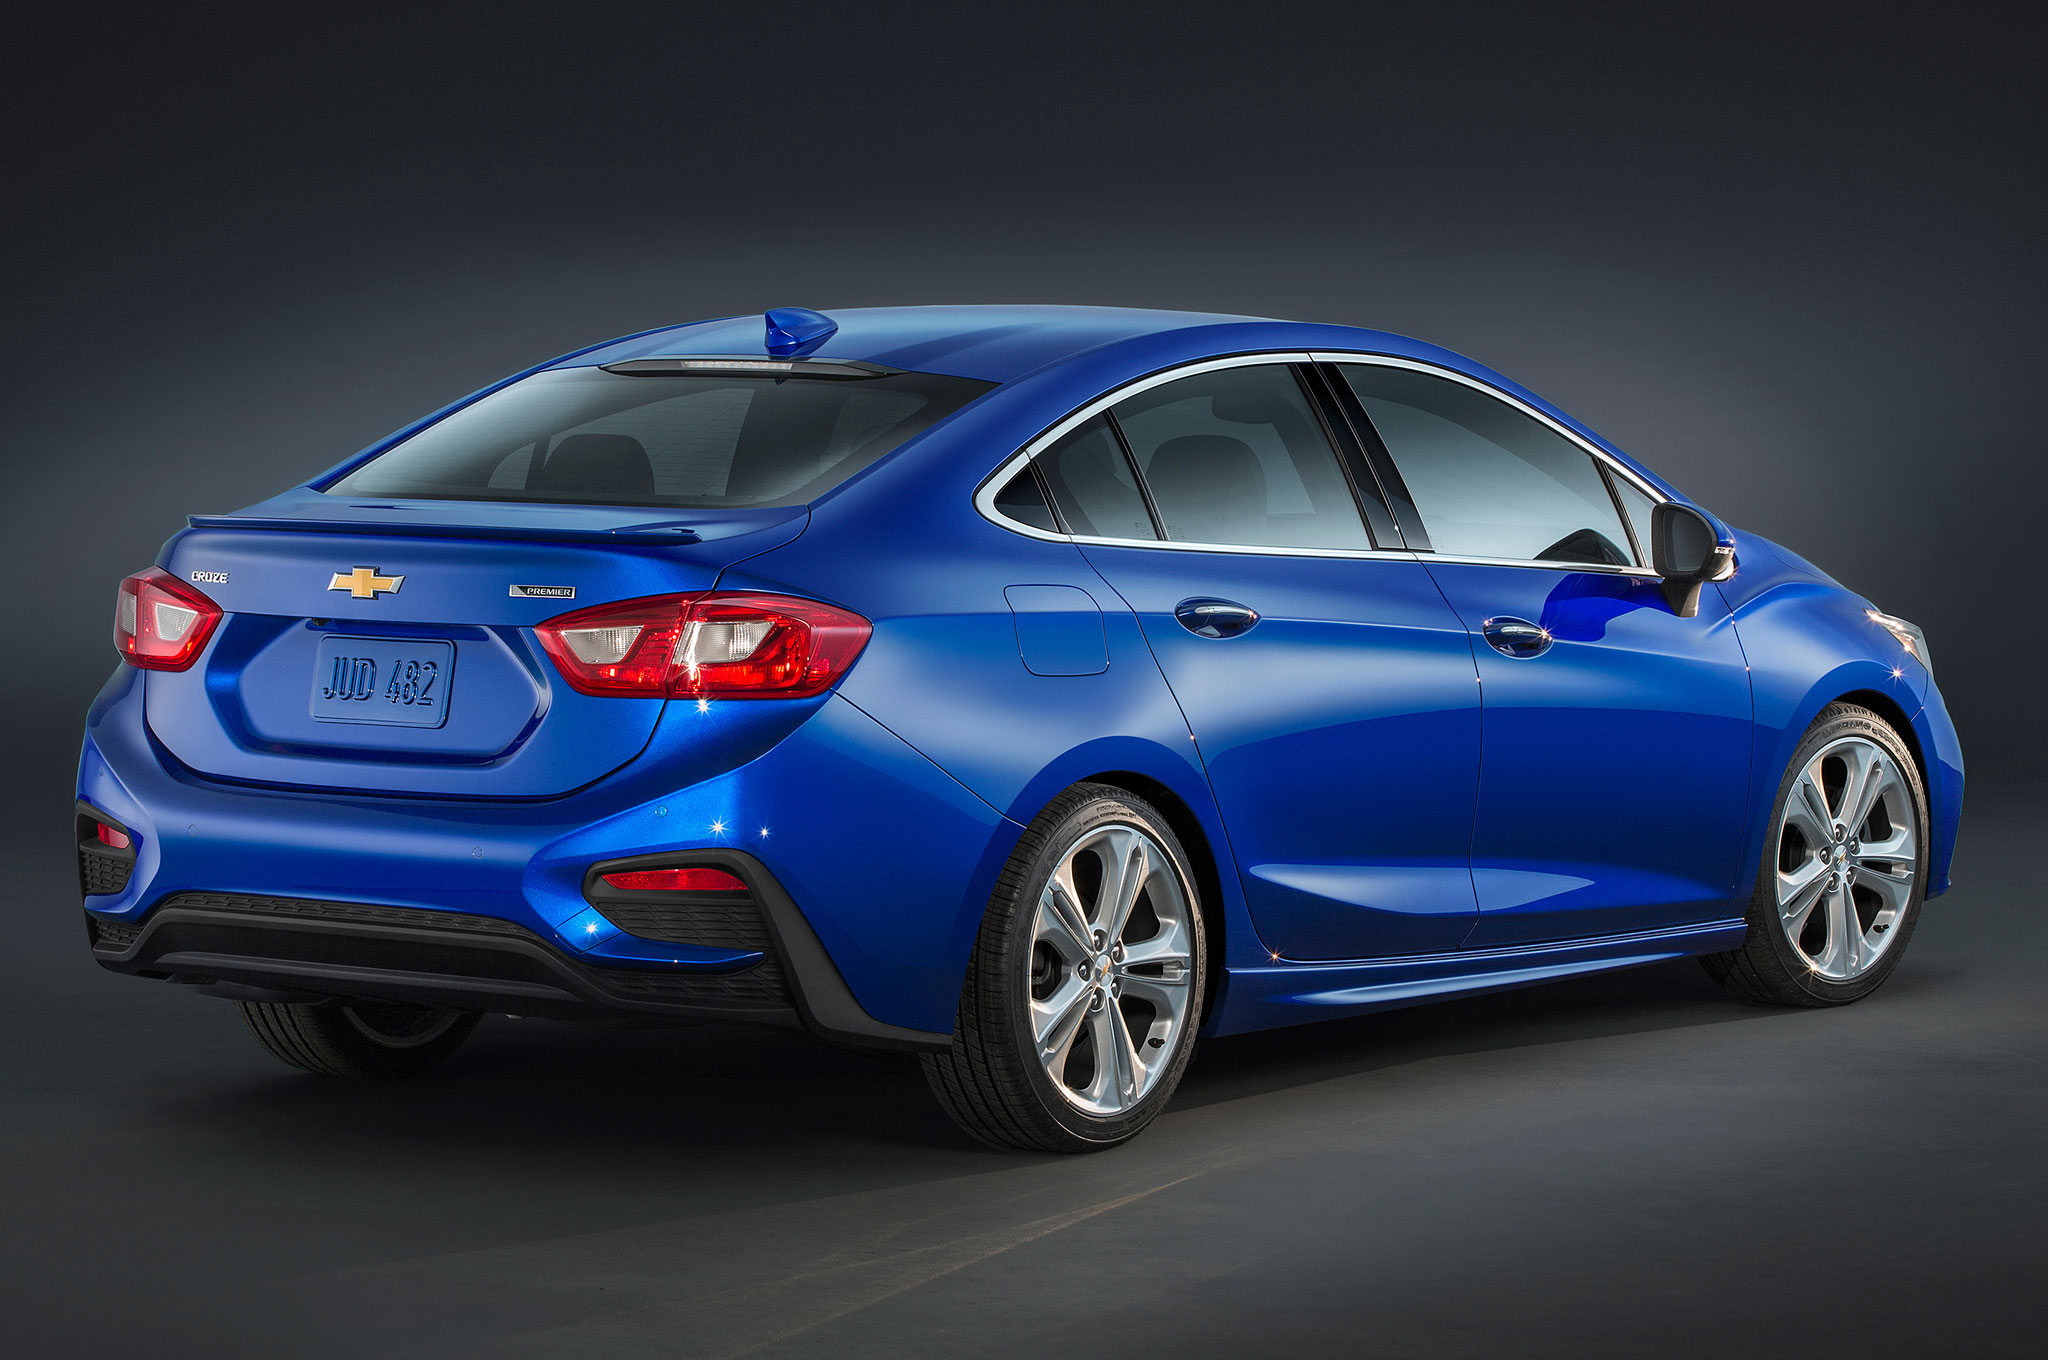 2016 Chevrolet Cruze Premier Rear Side View